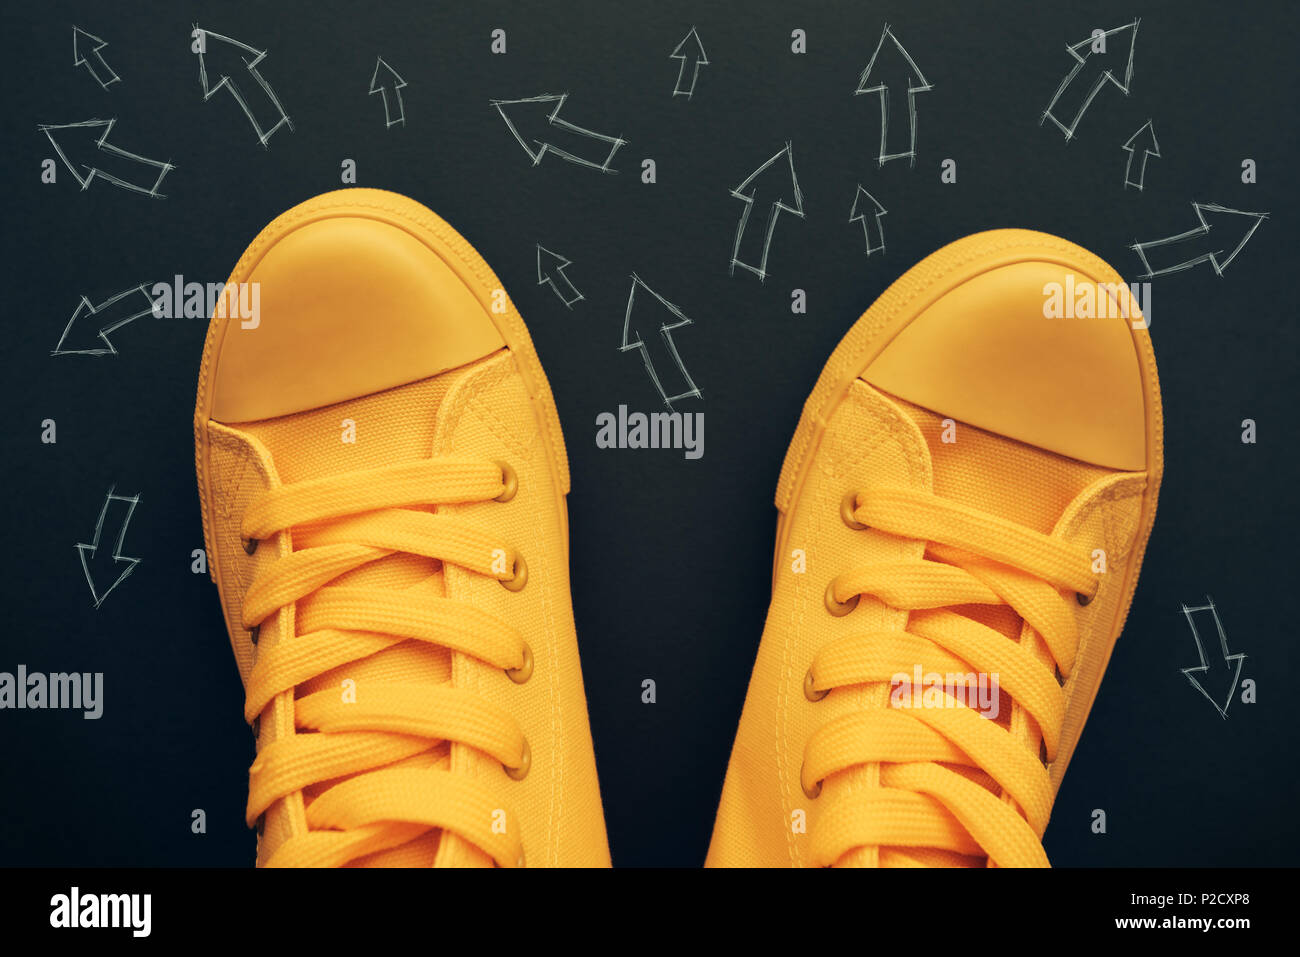 Making decisions and right choices conceptual image with yellow sneakers on the road with small arrow imprints pointing to various directions - Stock Image